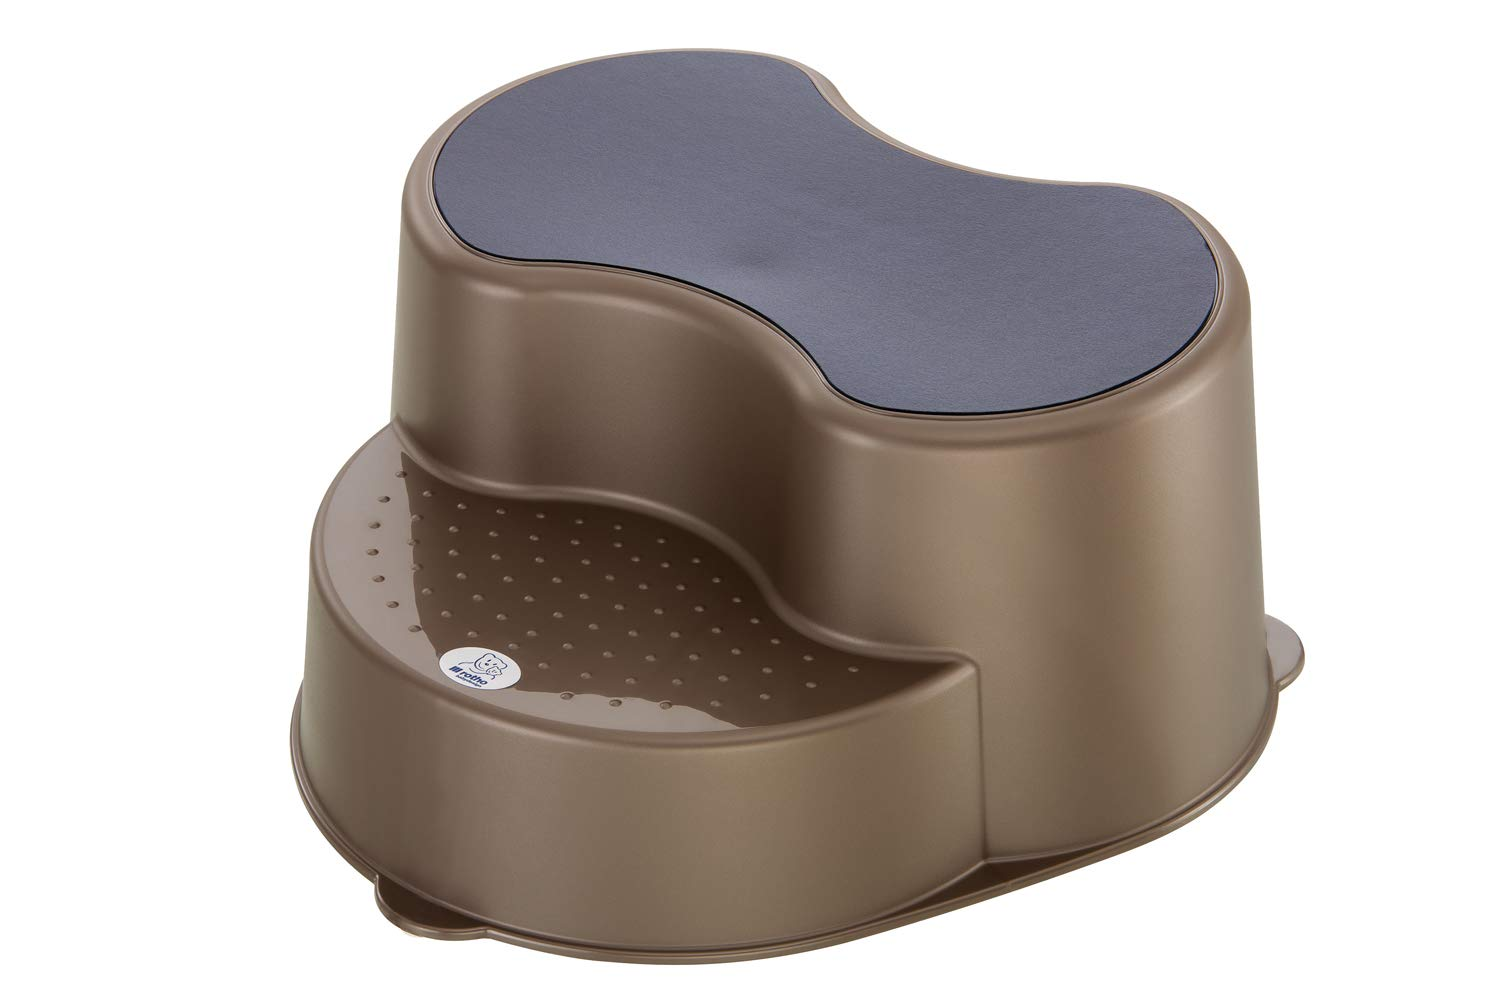 Rotho Babydesign Top Step Stool (Taupe Pearl) BabyCentre 20005 0207